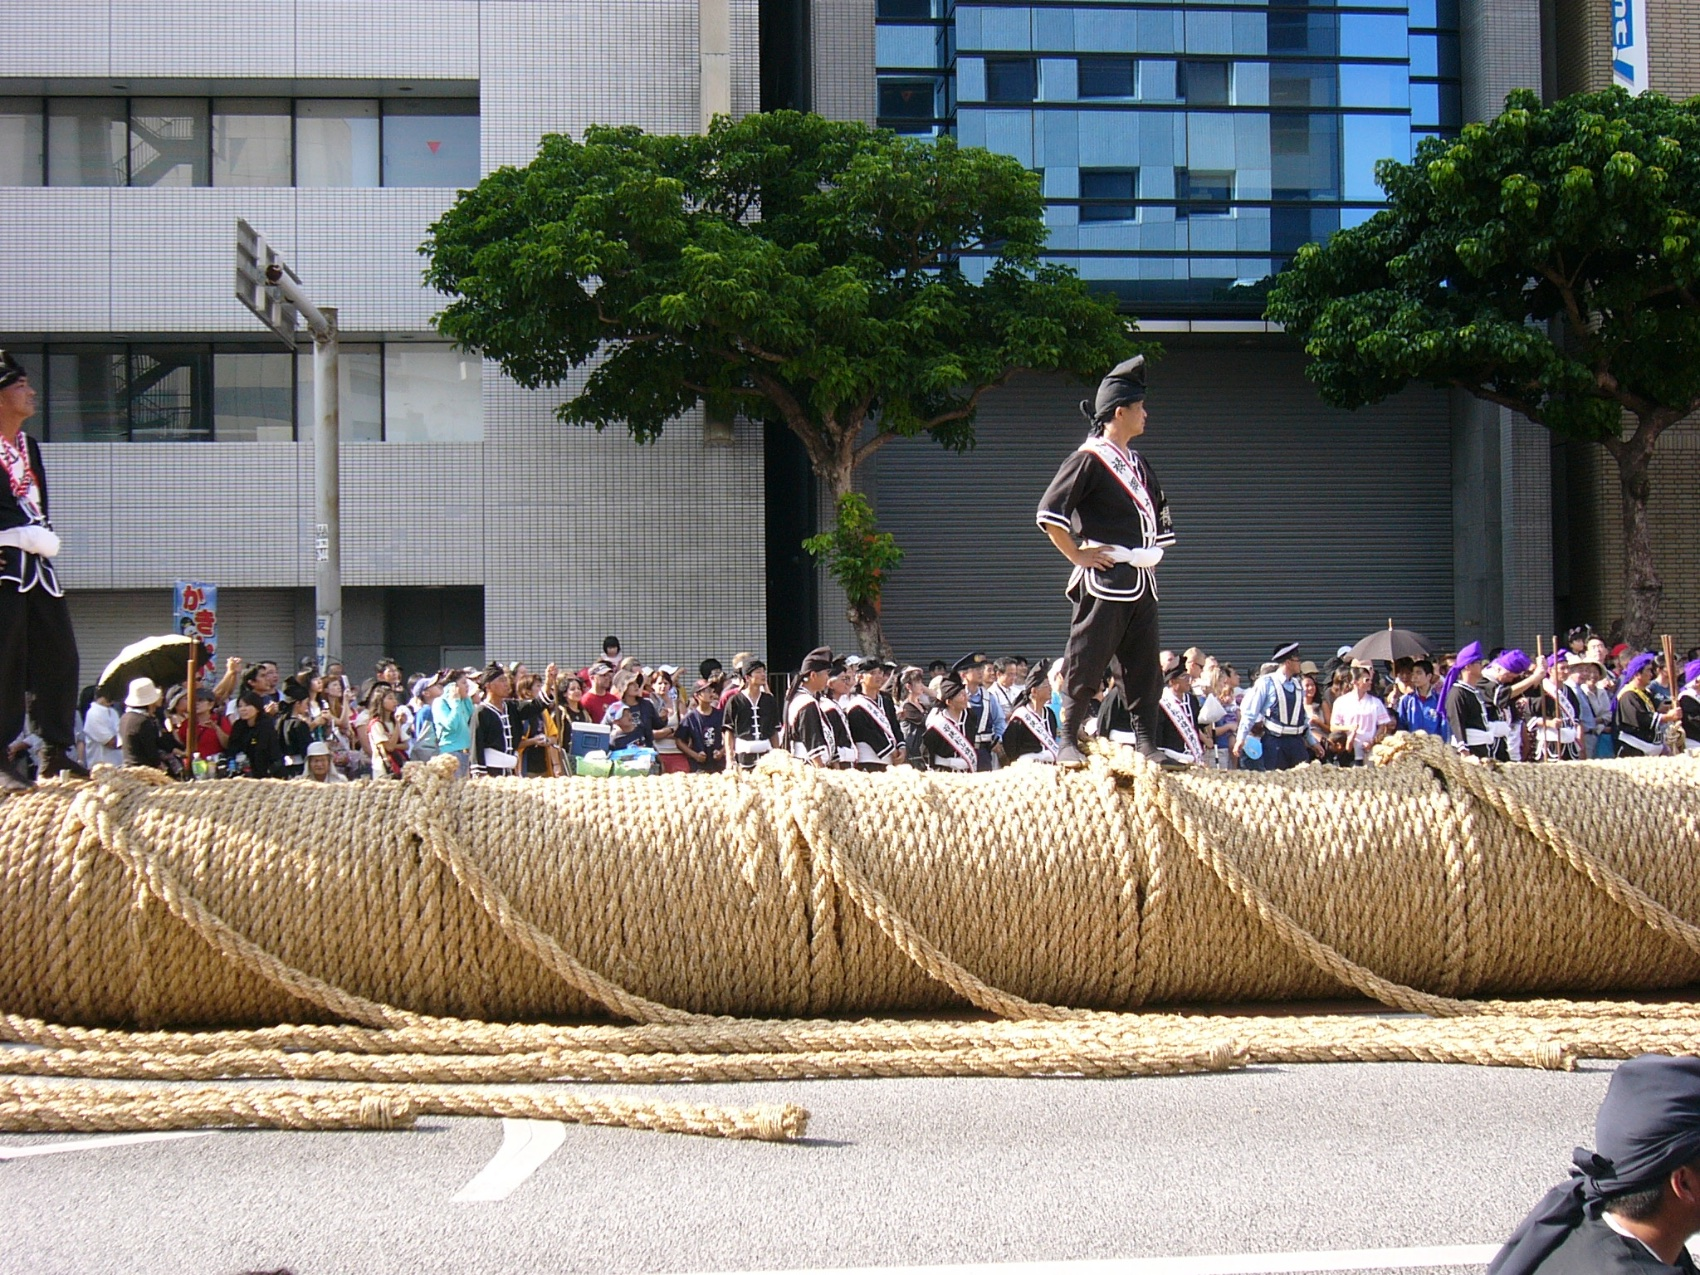 The Naha tug of war holds the record for the largest straw rope in the world.